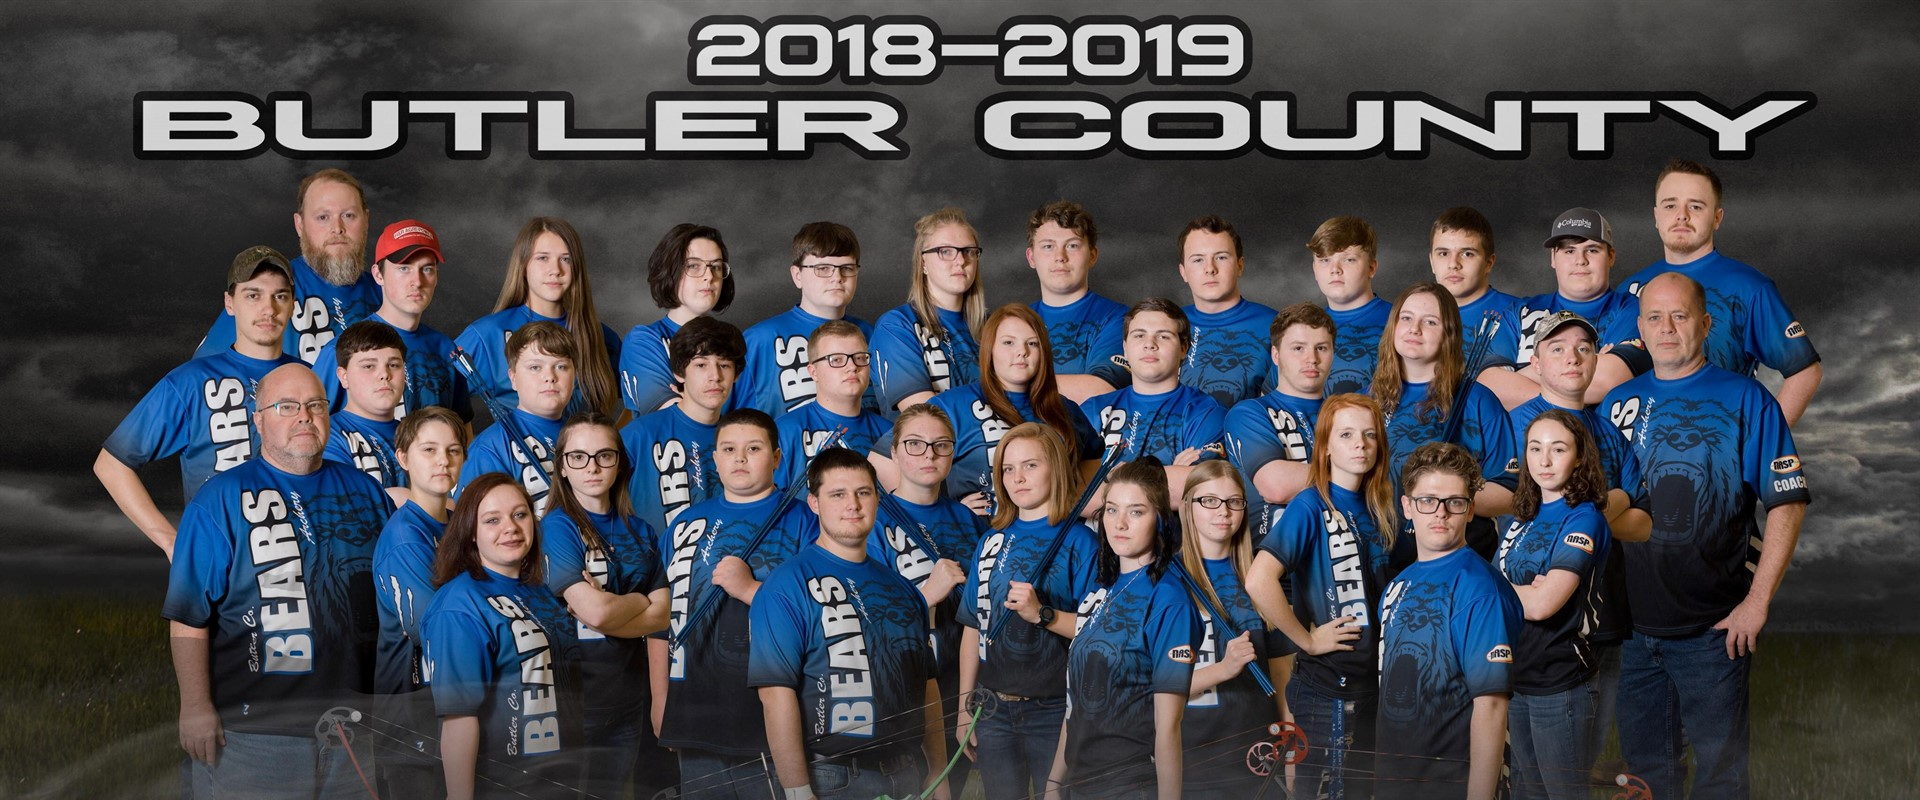 High School Archery Team 2018-2019